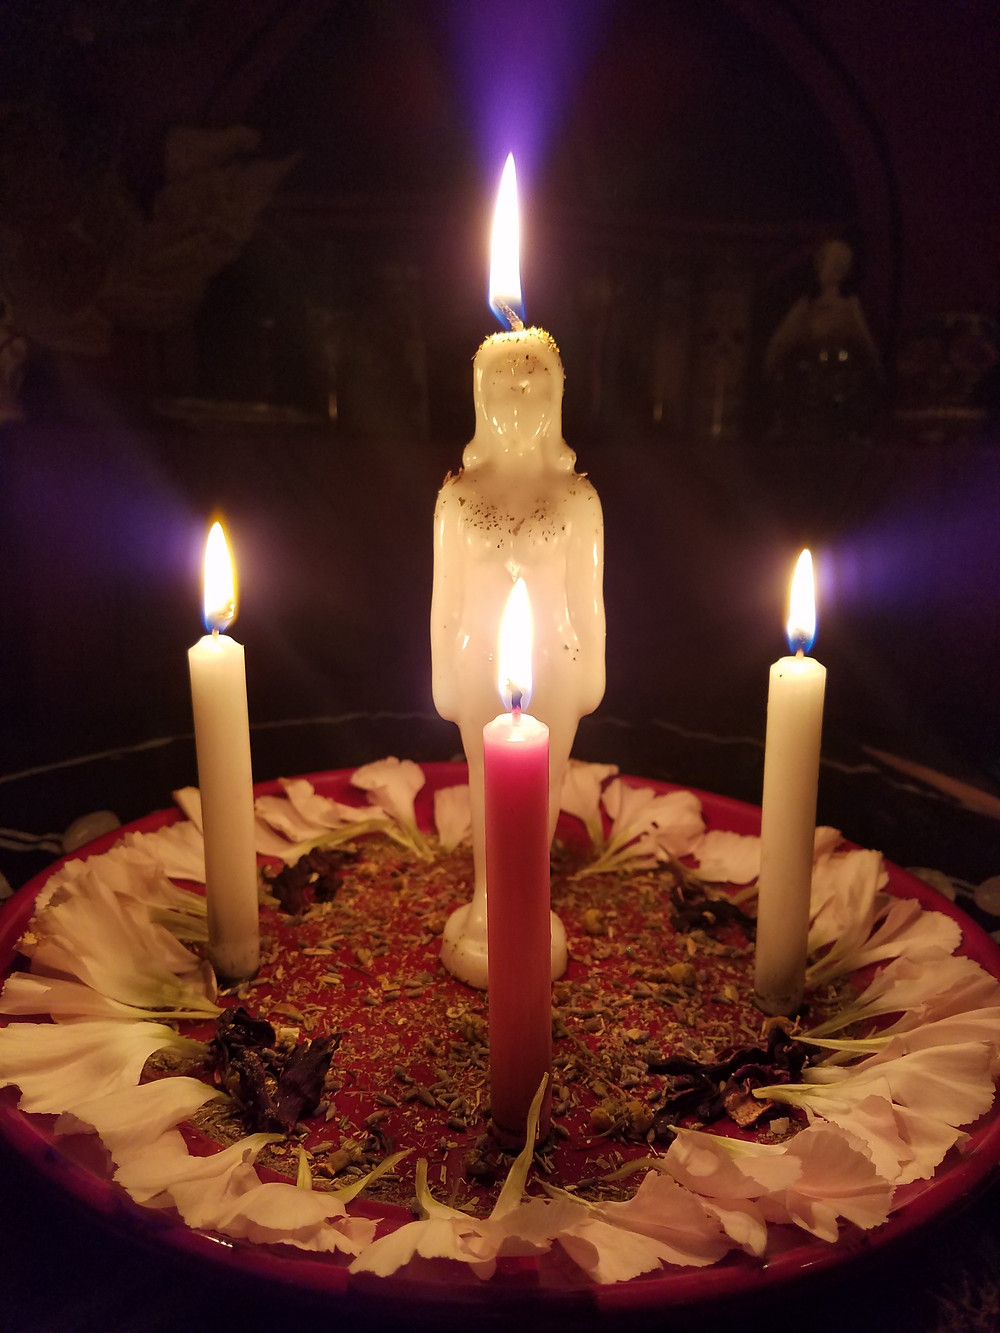 White female figure candle forgiveness spell